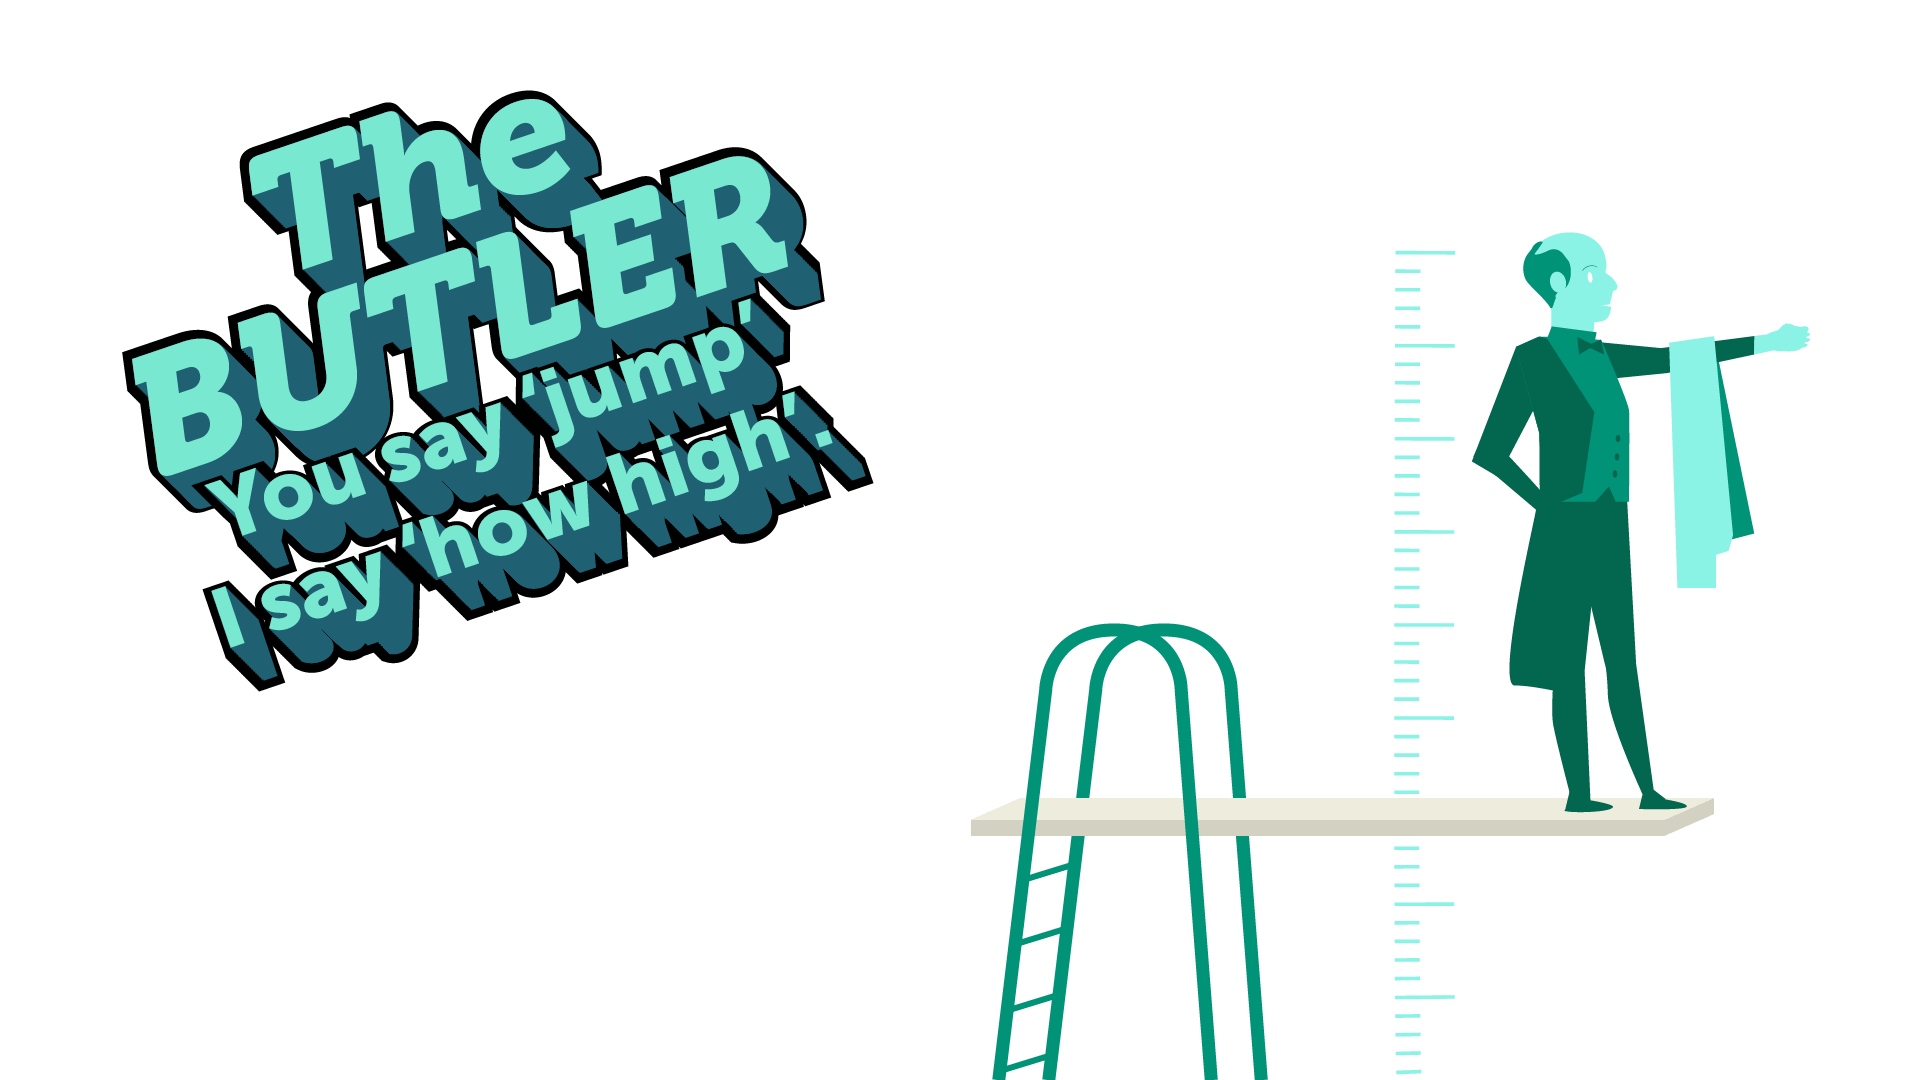 IMAGE: Title 'The Butler' subtitle 'You say 'jump', I say 'how high'.' - types of marketing consultants